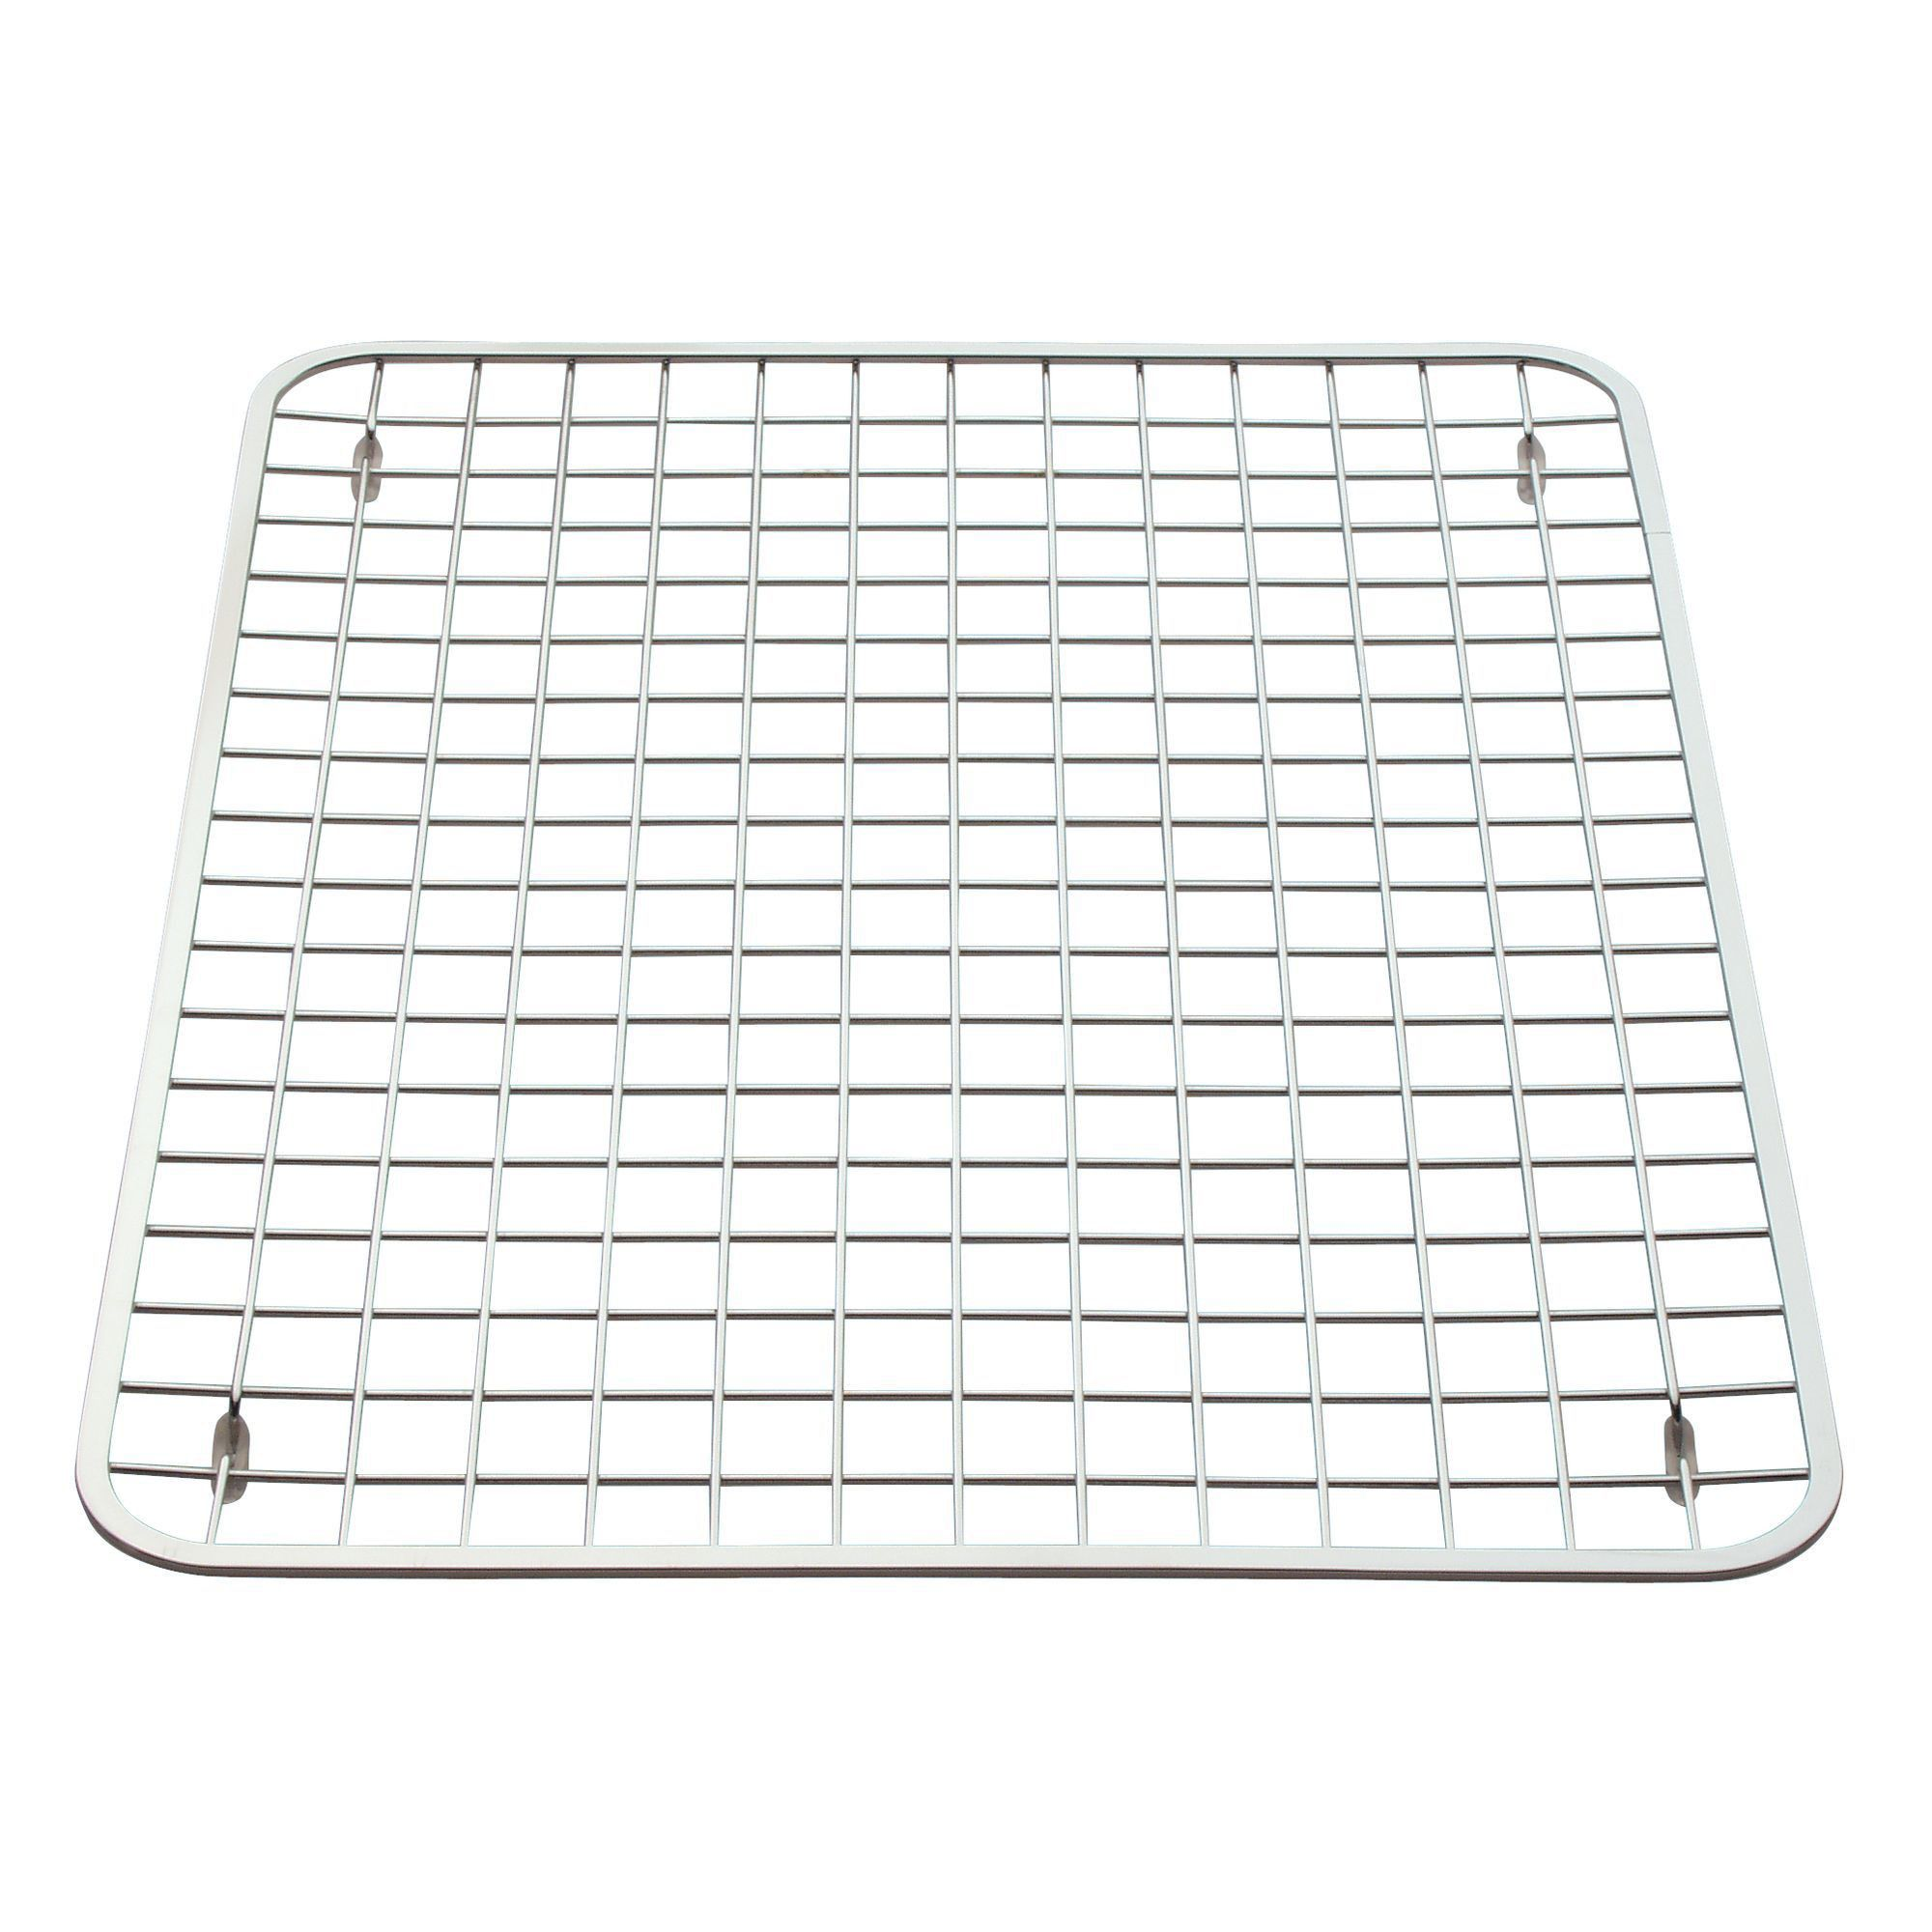 Interdesign Gia Stainless Steel Sink Grid Regular Polished Chrome